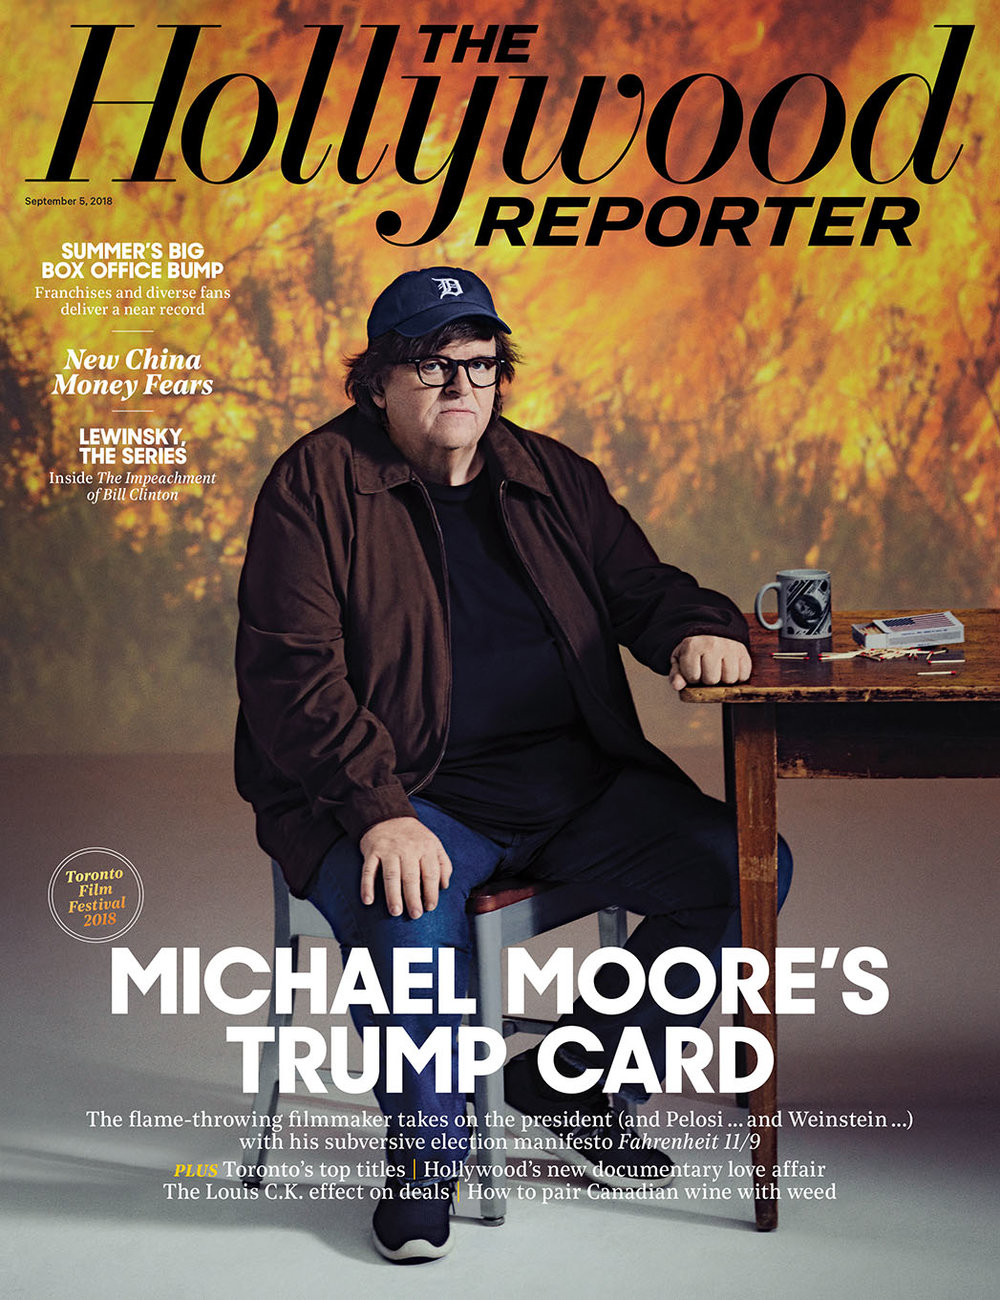 thr_issue_29_michael_moore_cover.jpg